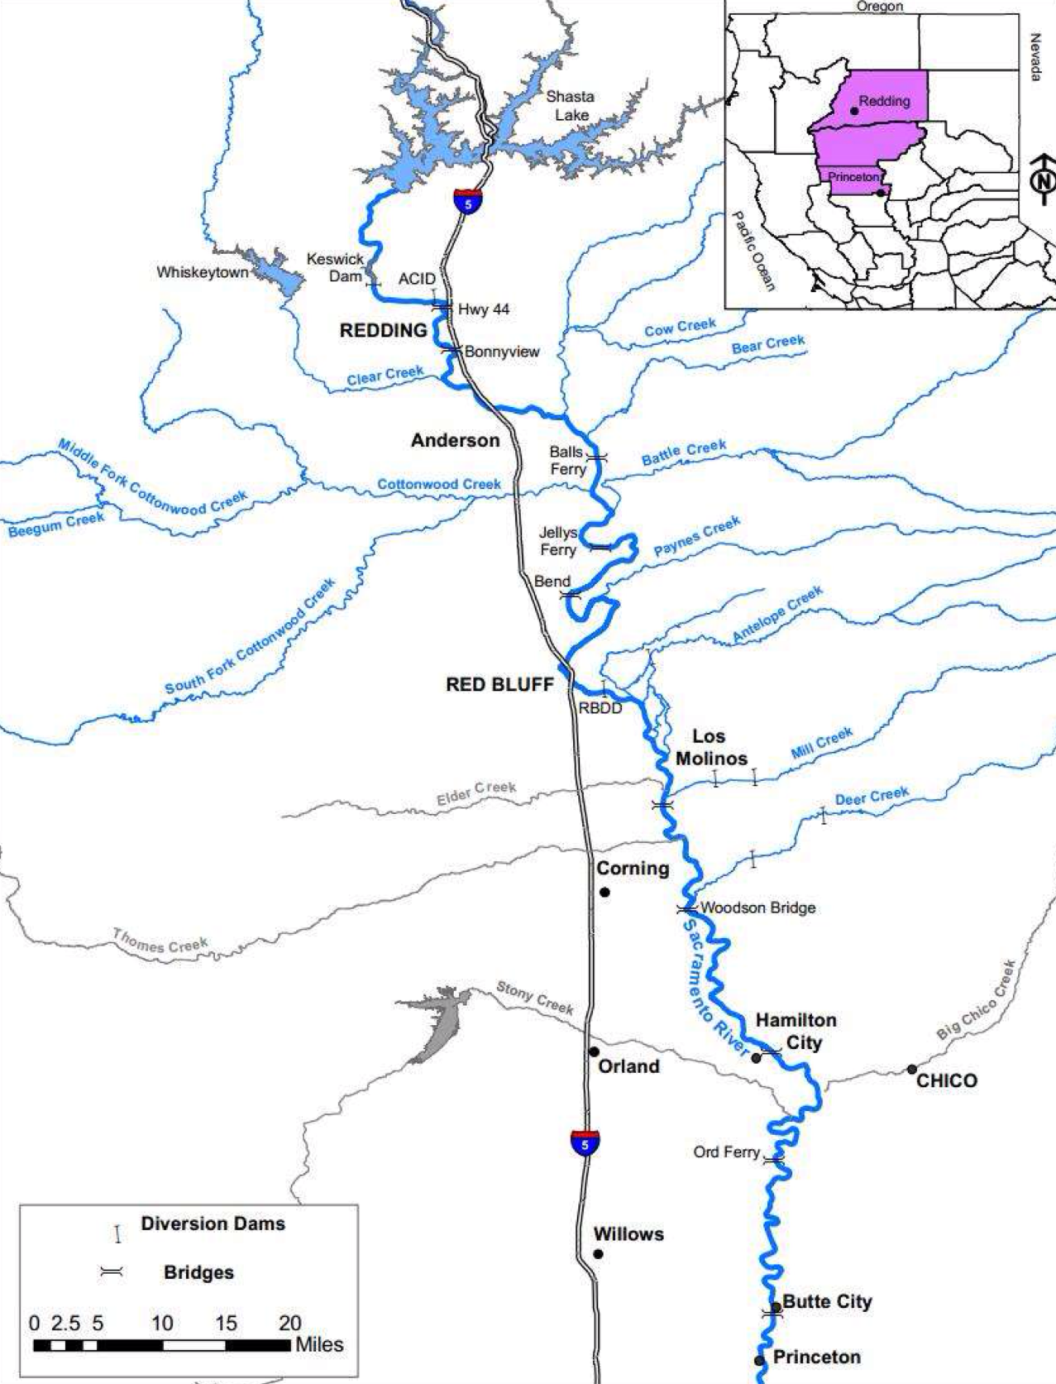 Salmon and Sturgeon Compromised in Near-Record Water Year ... on snake river map, platte river map, missouri river, columbia river, amu darya river map, klamath river, salton sea map, klamath mountains, new orleans river map, california central valley, colorado river map, willamette river, shasta dam, hudson river, feather river, delaware river, south yuba river map, san joaquin river, hudson river map, mississippi river, folsom lake, san francisco bay, james river, ohio river map, shasta lake, fraser river map, sacramento valley, potomac river map, brazos river map, saint lawrence river map, tennessee river map, yellowstone river map, sierra nevada, gila river map, arkansas river map, american river, san joaquin map, altamaha river map, ohio river, columbia river map,